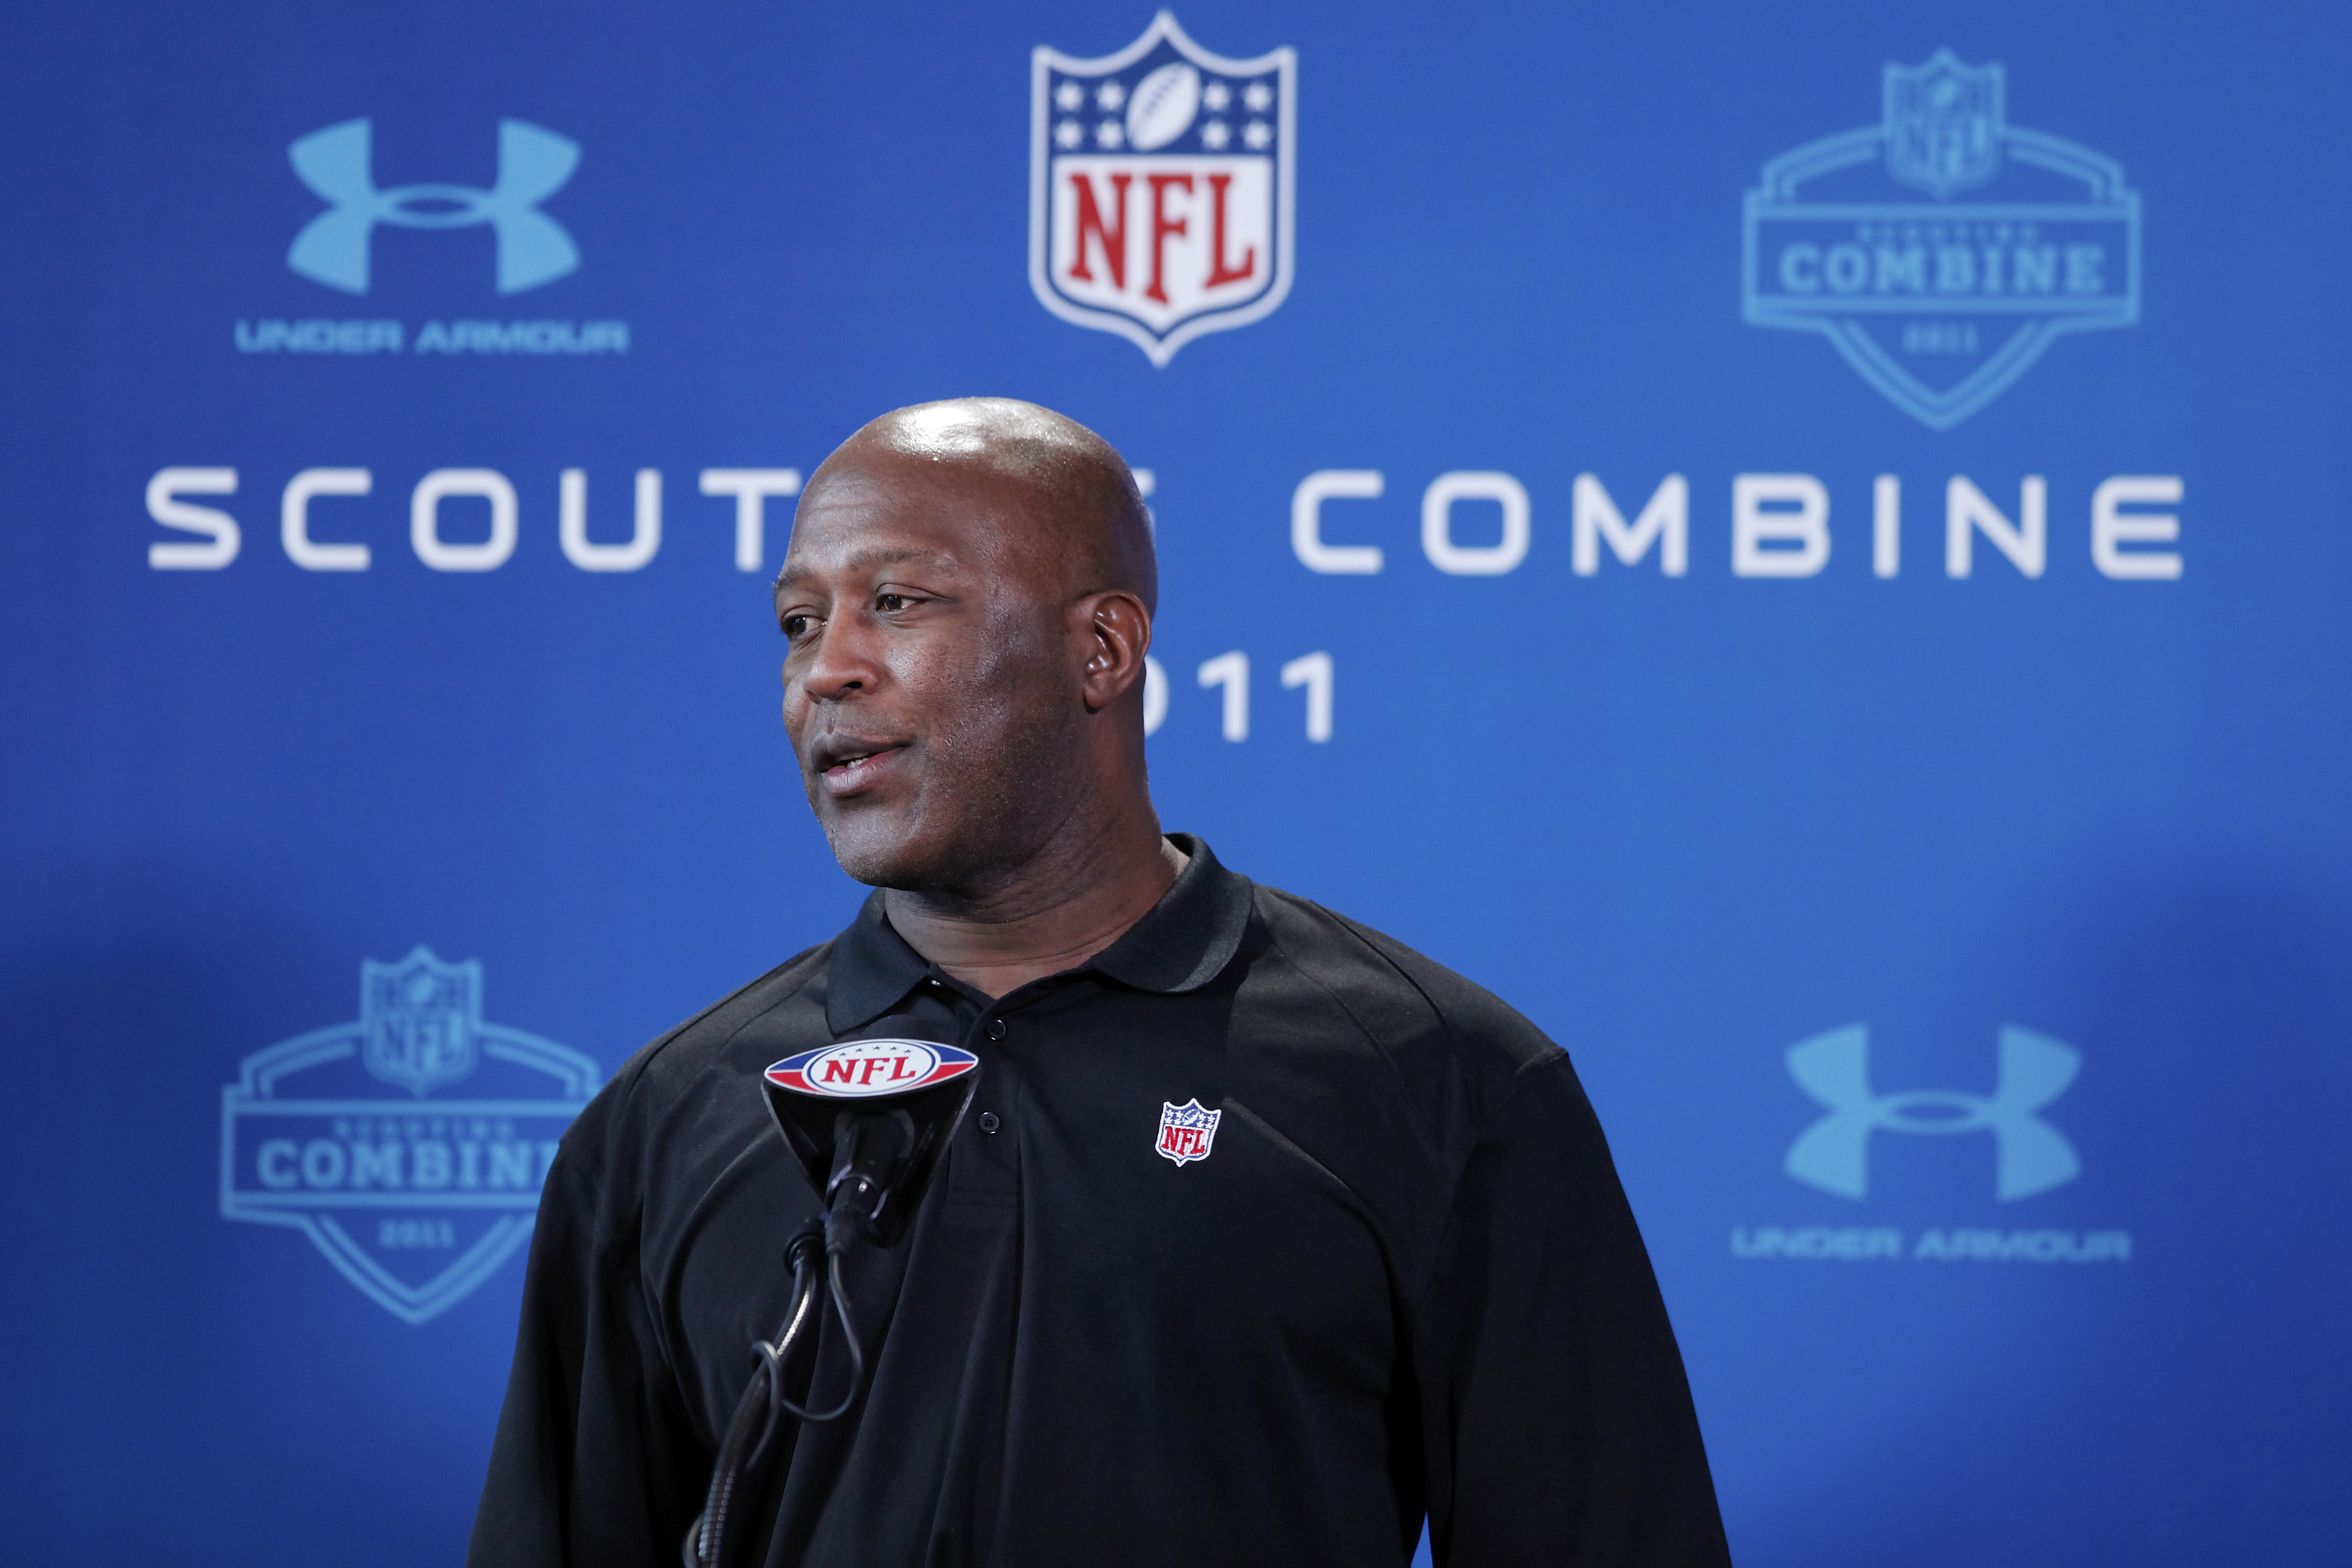 INDIANAPOLIS, IN - FEBRUARY 25: Chicago Bears head coach Lovie Smith answers questions during a media session at the 2011 NFL Scouting Combine at Lucas Oil Stadium on February 25, 2011 in Indianapolis, Indiana. (Photo by Joe Robbins/Getty Images)